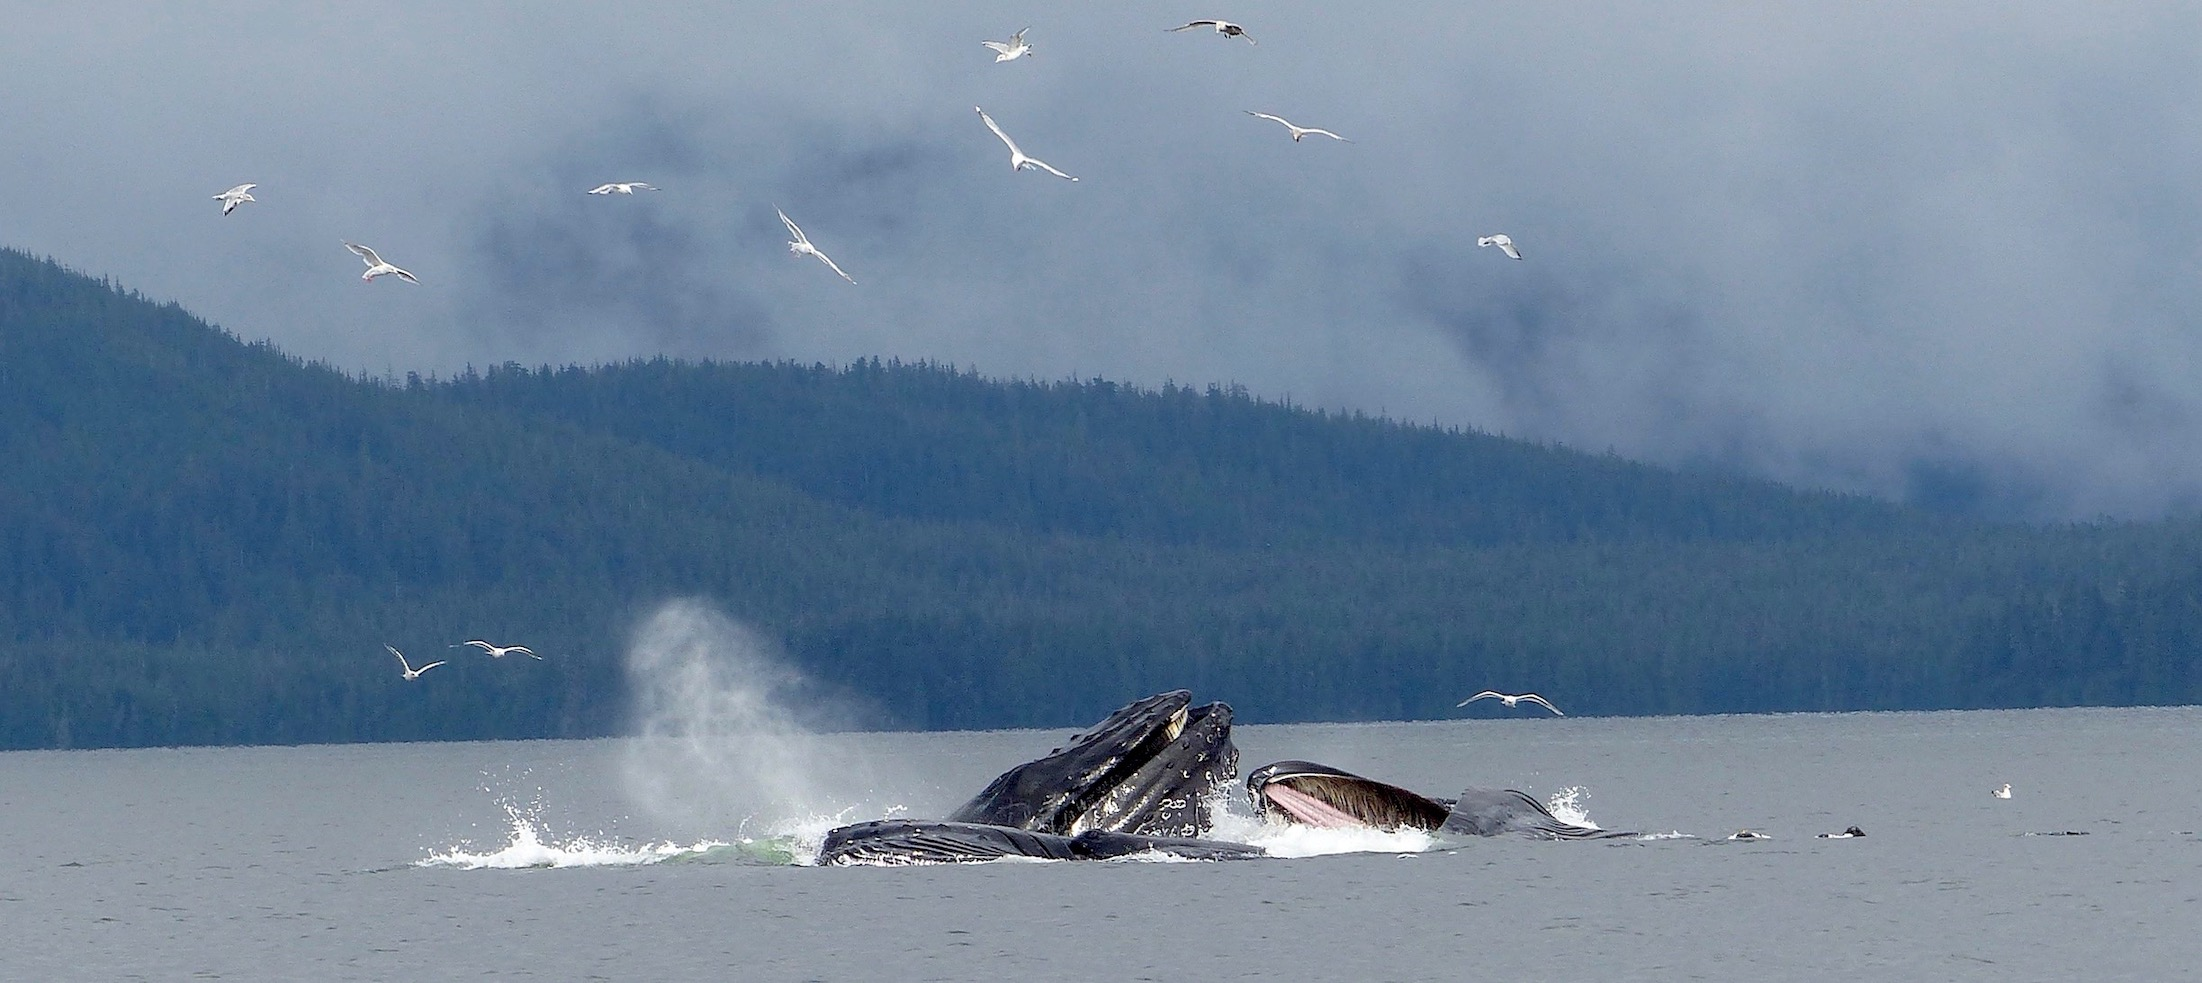 IN AN INSTANT THE WHALES BROKE THE SURFACE, MOUTHS FILLED WITH GREAT GULPS OF WATER AND FISH AND GULLS SQUACK ALL AROUND. IN THE CLARENCE STRAIT ON MY FORST DAY ON PRINCE OF WALES ISLAND, ALASKA. IMAGE: ©ROBERTA KRAVETTE